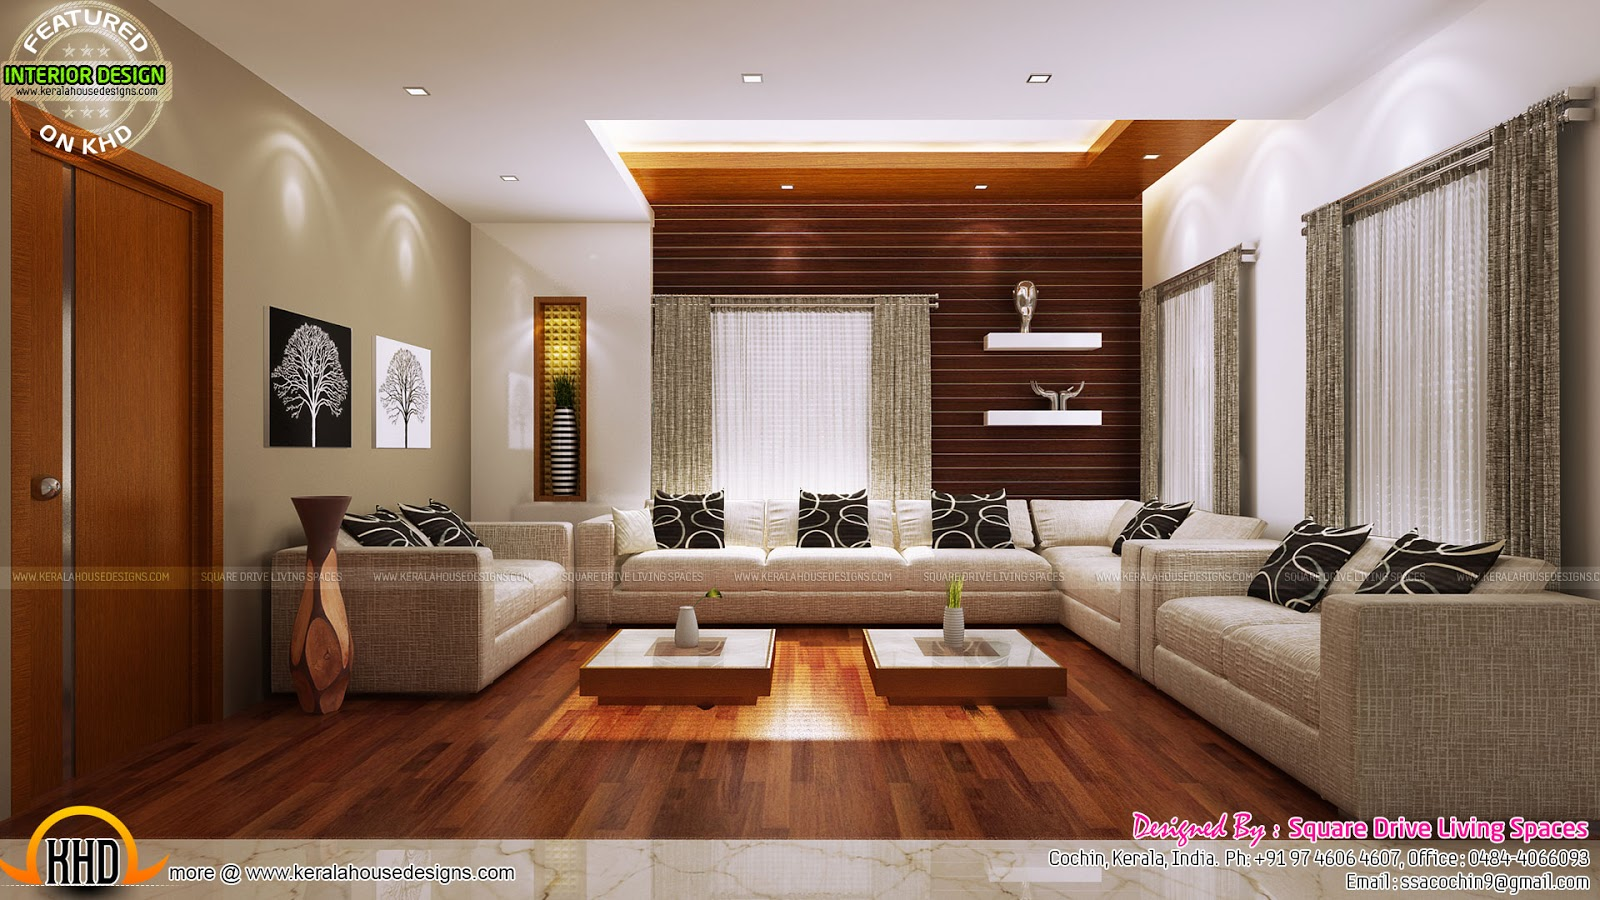 Excellent kerala interior design kerala home design and for Kerala home living room designs